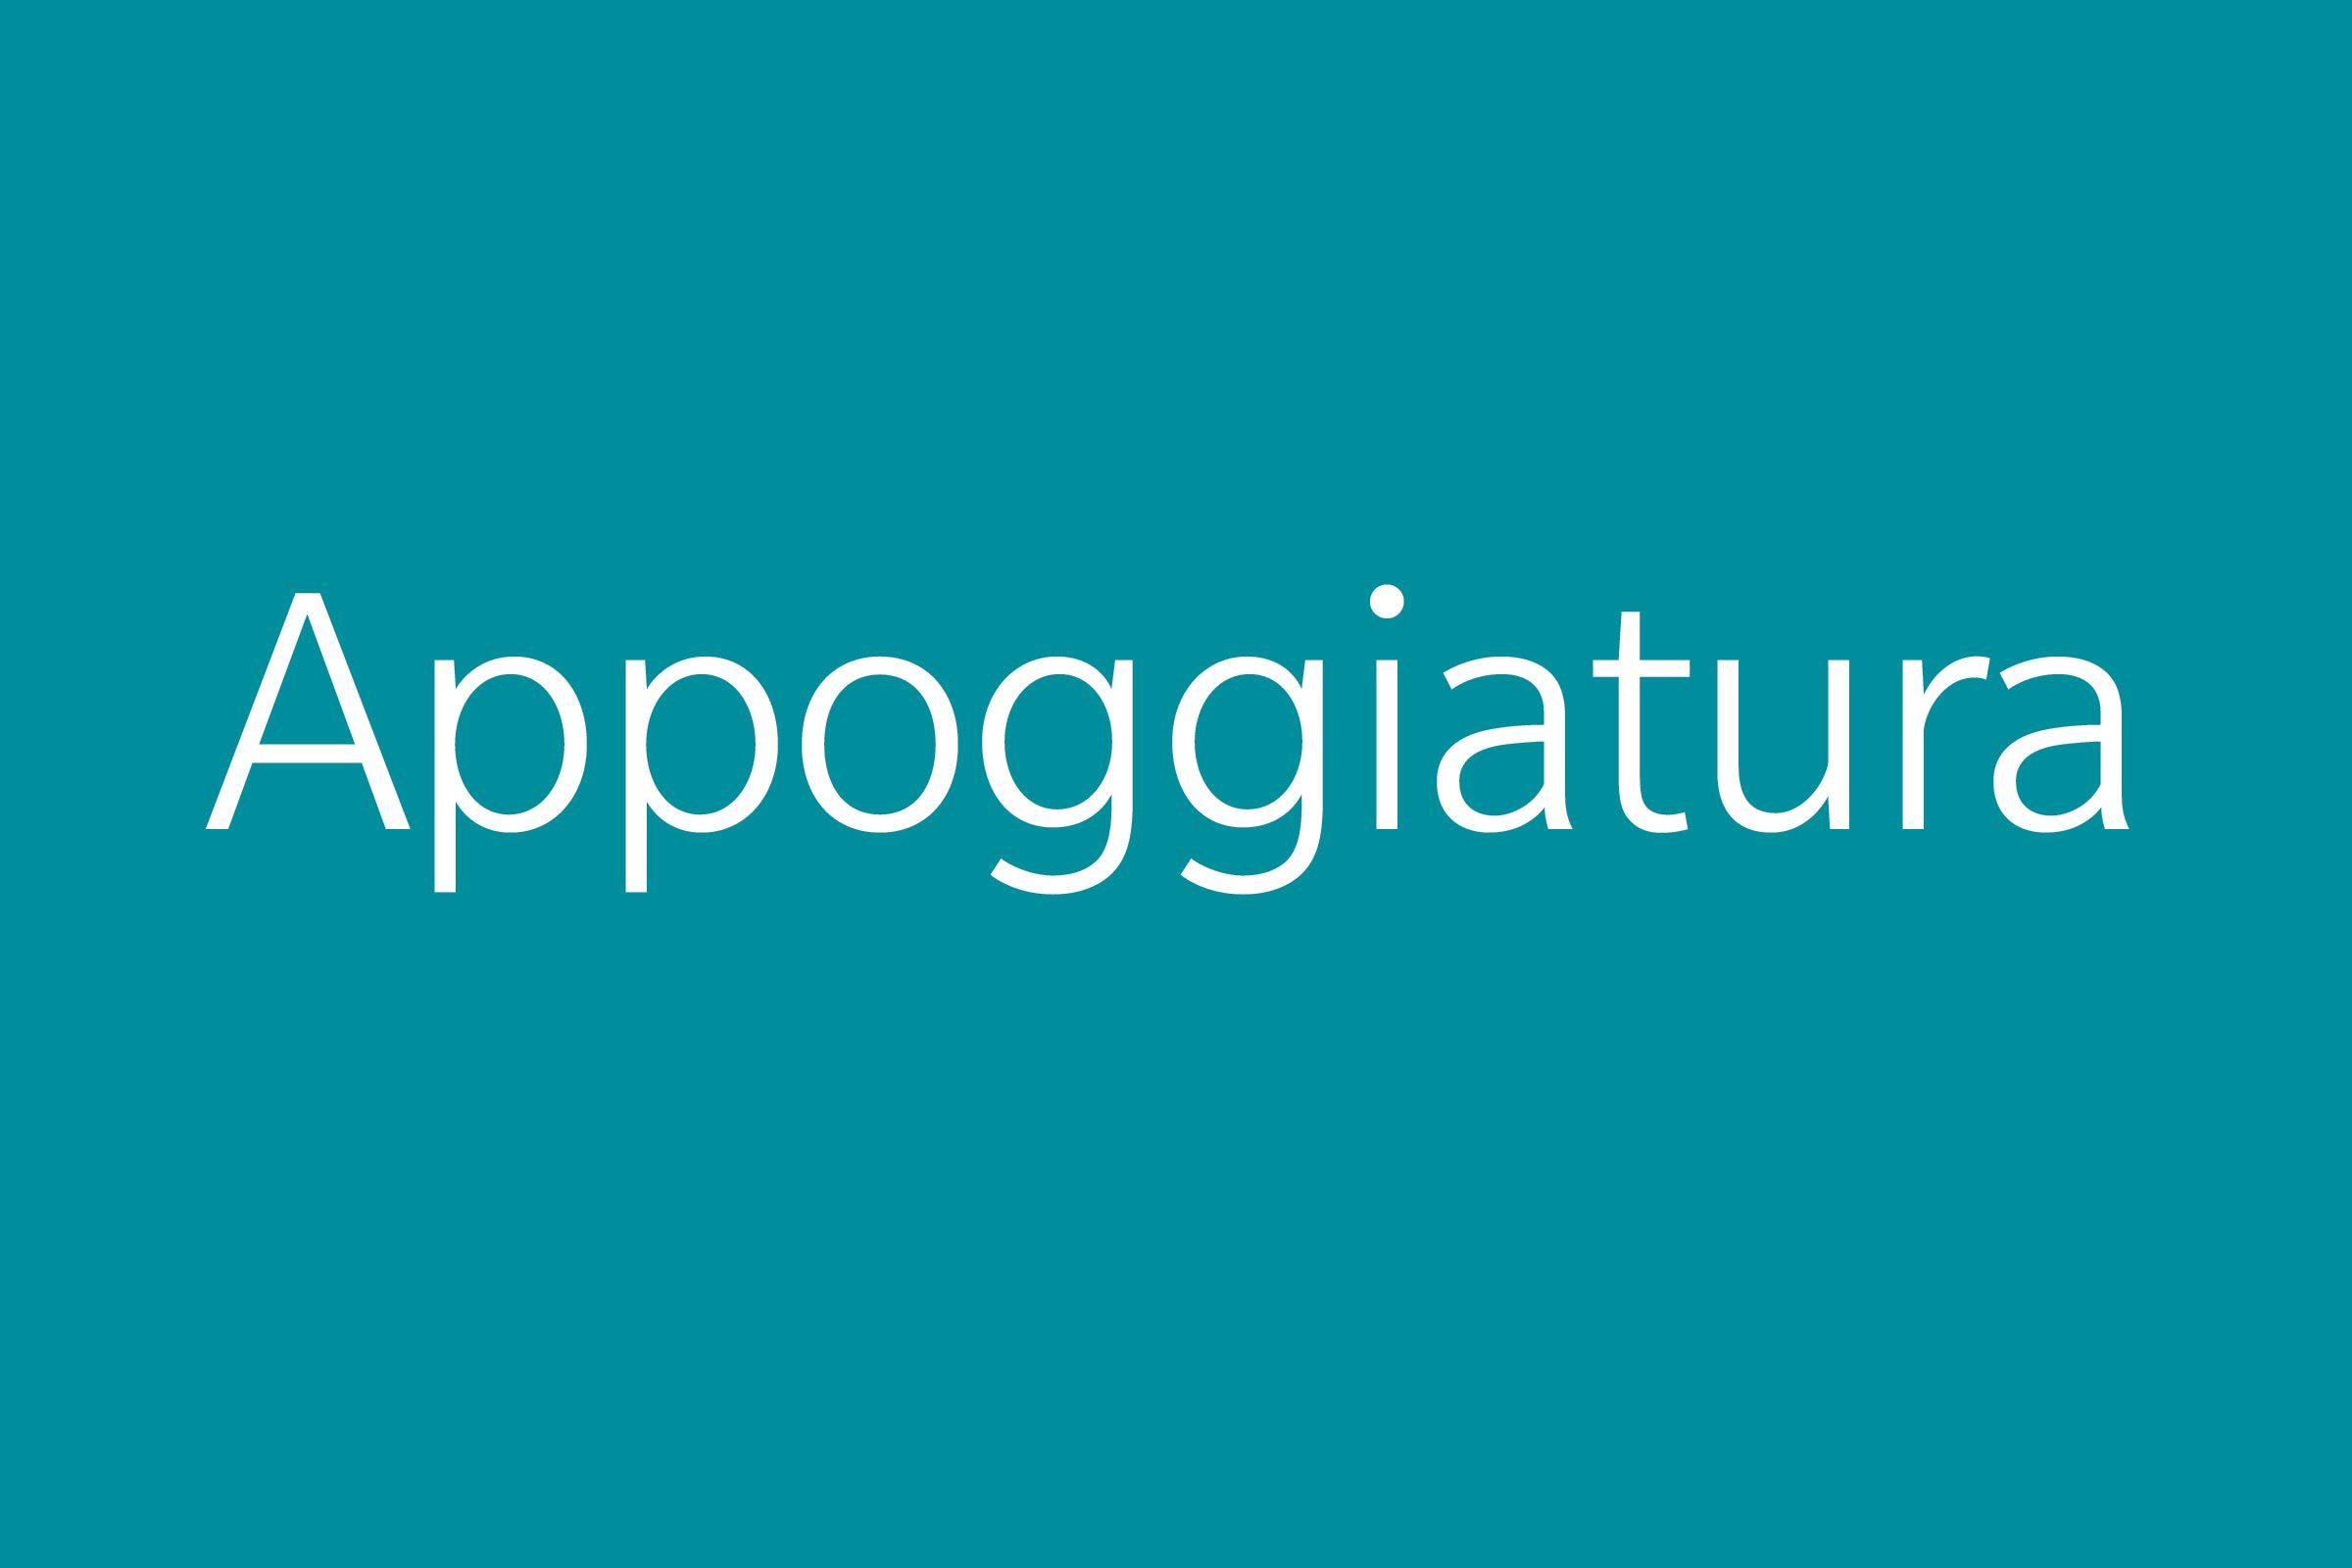 appoggiatura funny word funny words to say